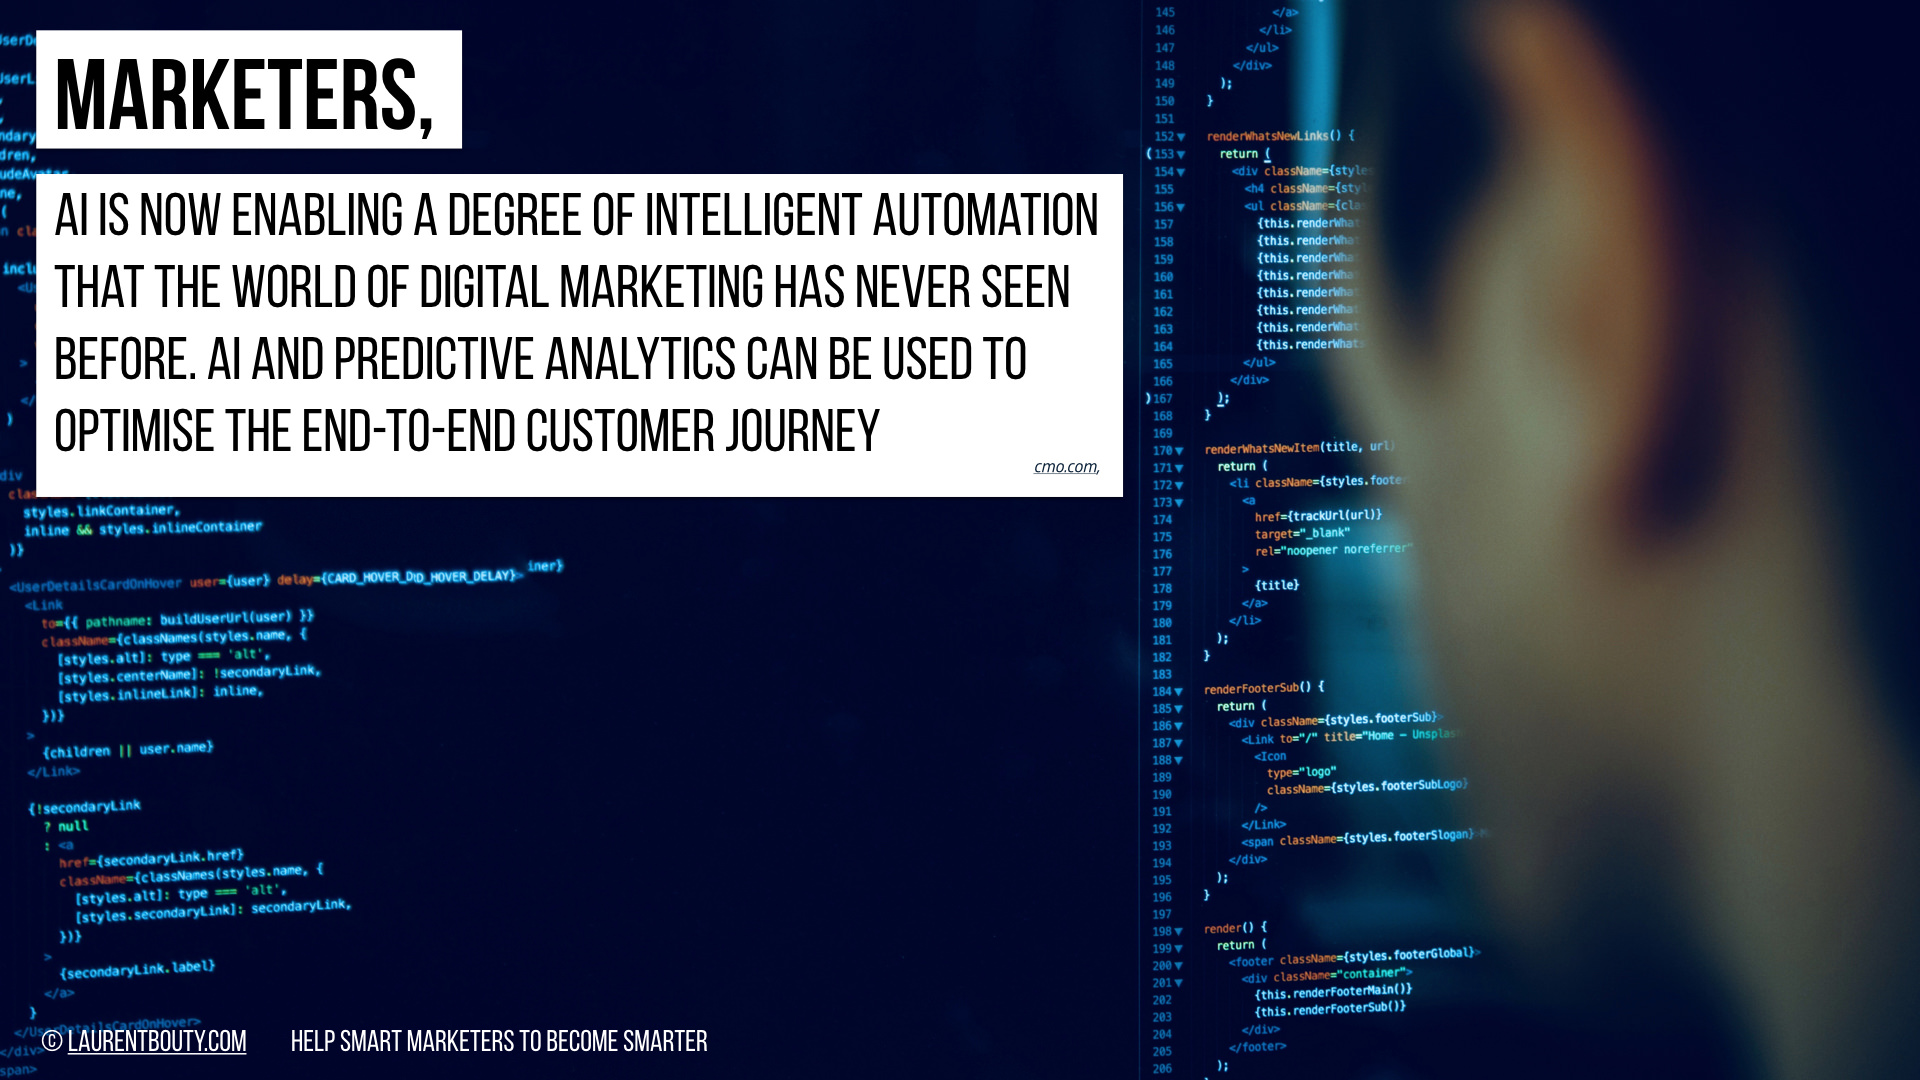 Marketers, AI is now enabling intelligent automation